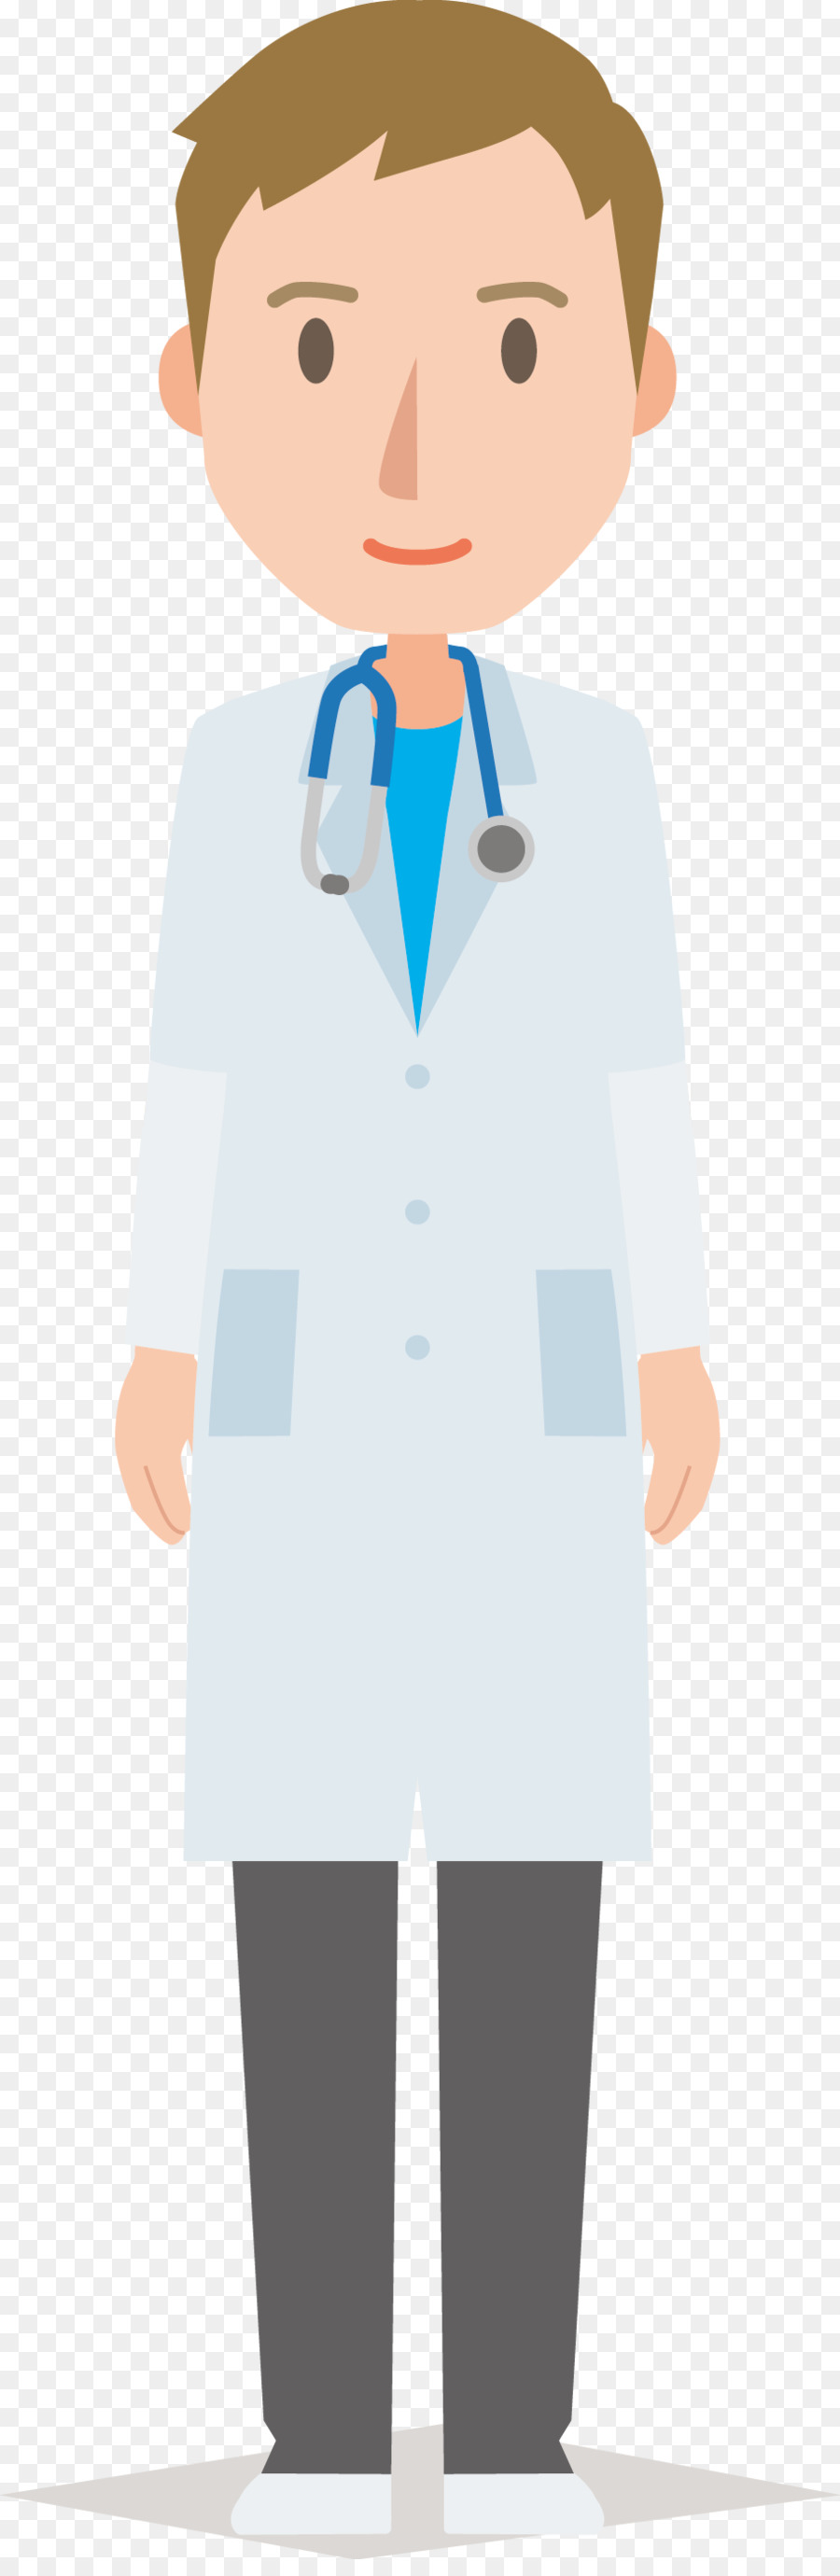 900x2760 Download Cute Doctor Icon Male Doctor Vector